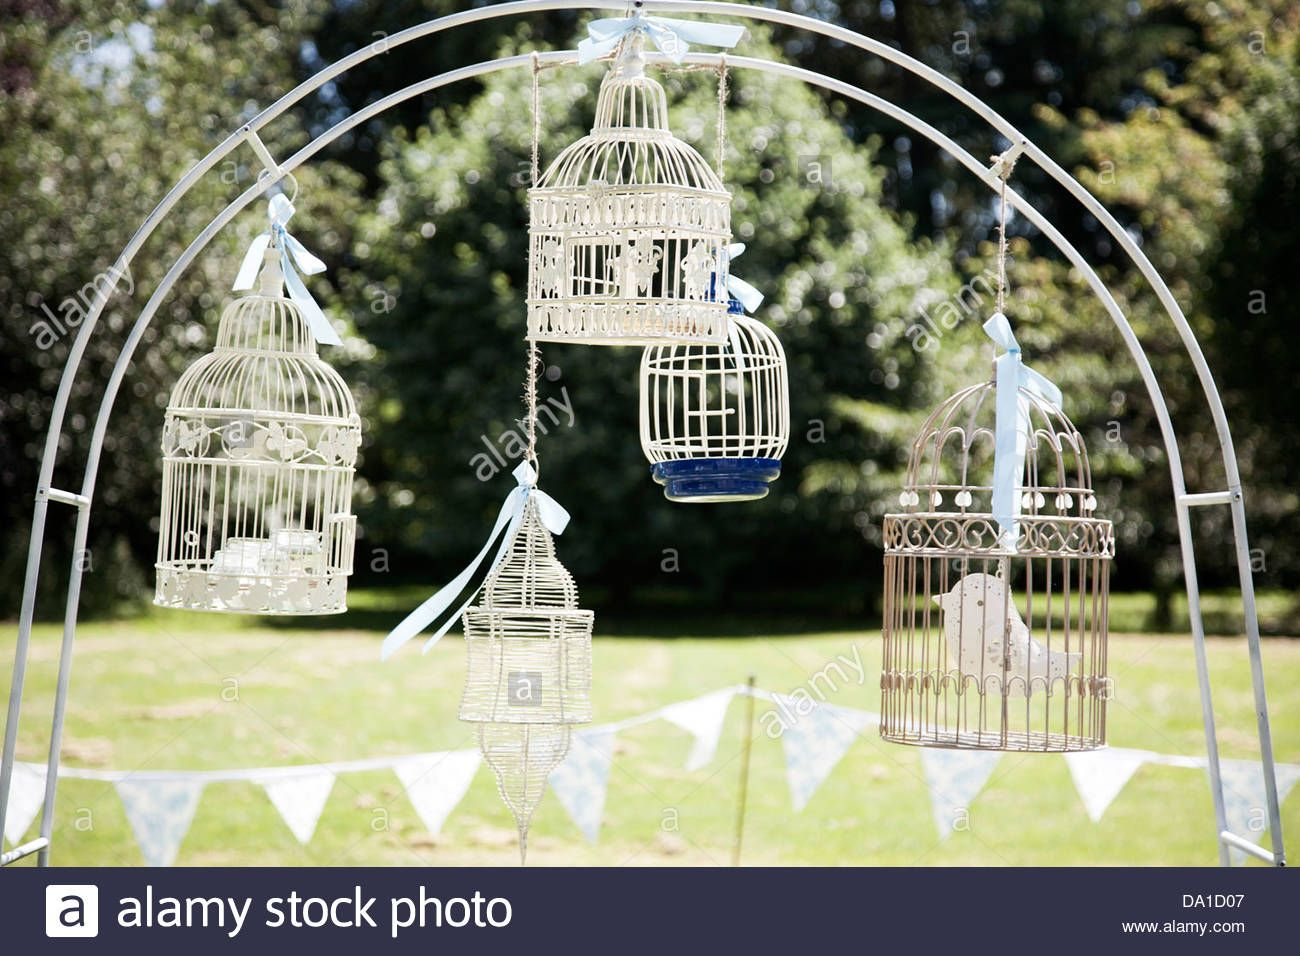 Image result for how to decorate an archway for garden wedding